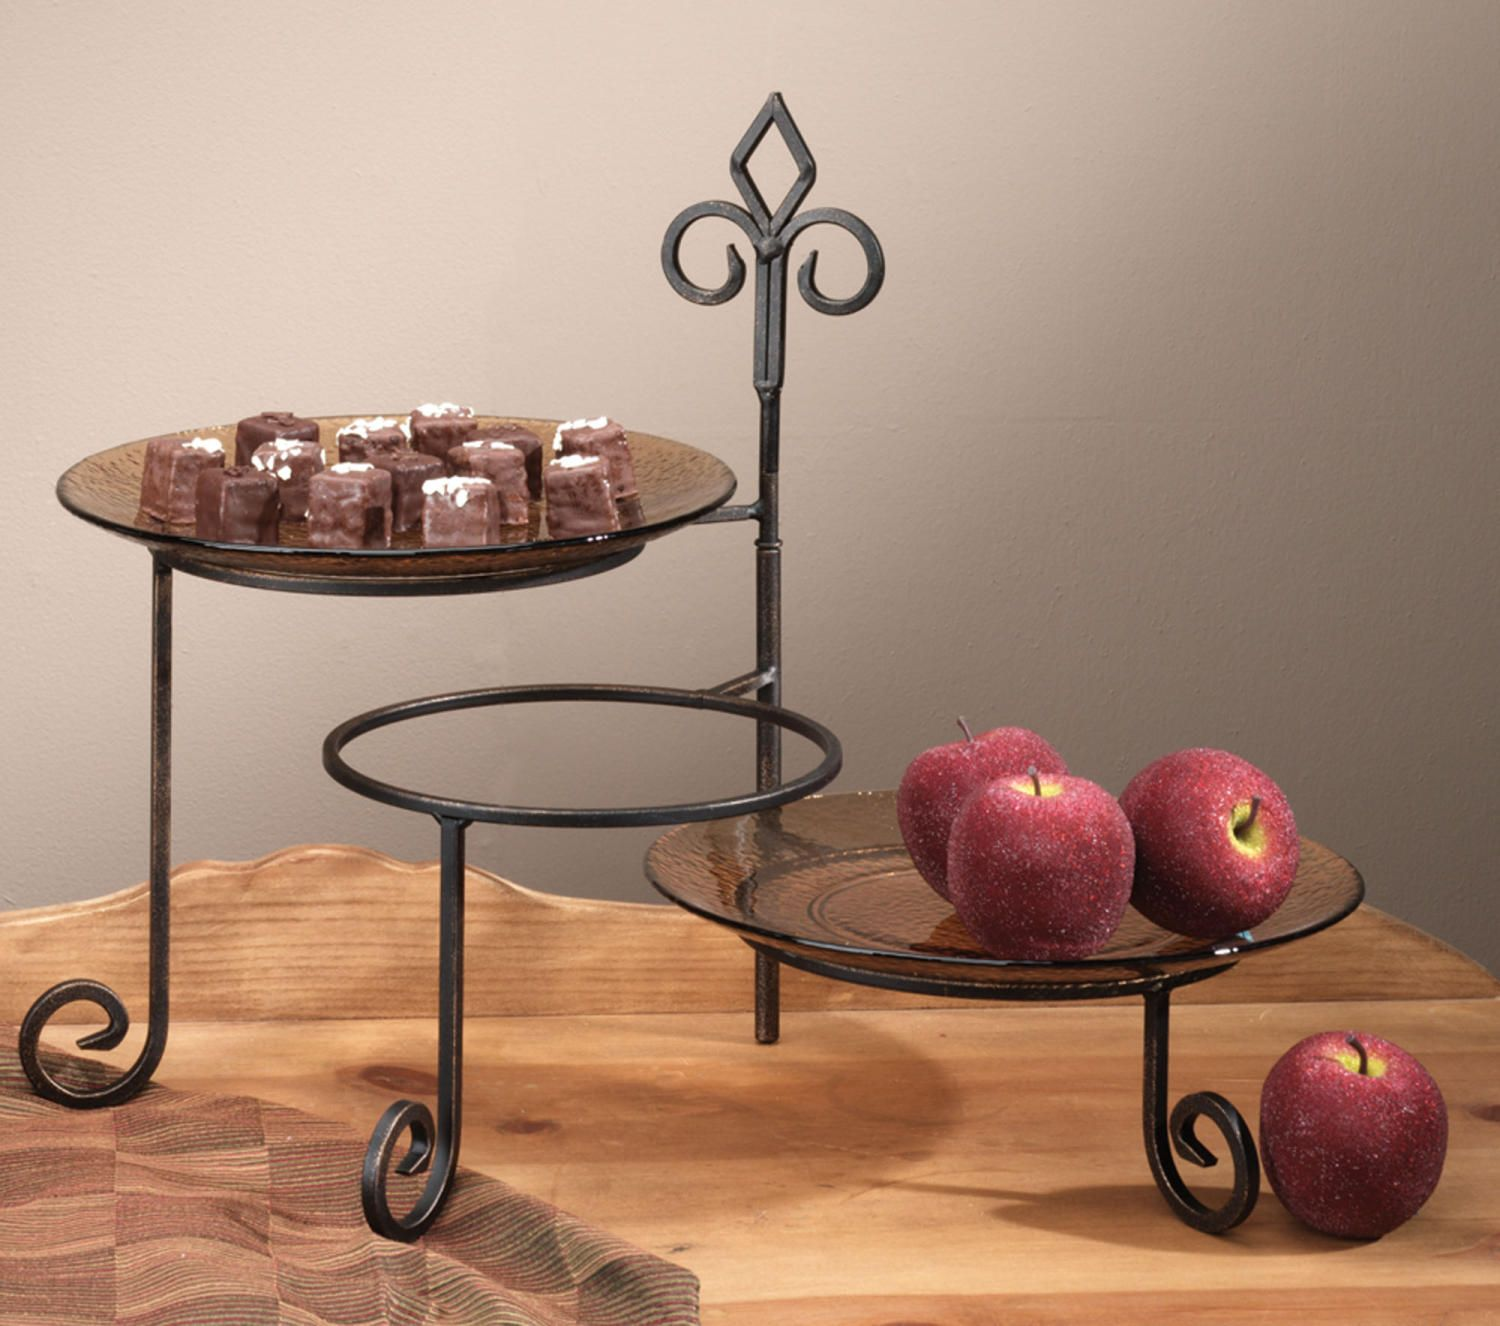 Keller 3 Tier Swivel Plate Stand (Buffet & Serving)